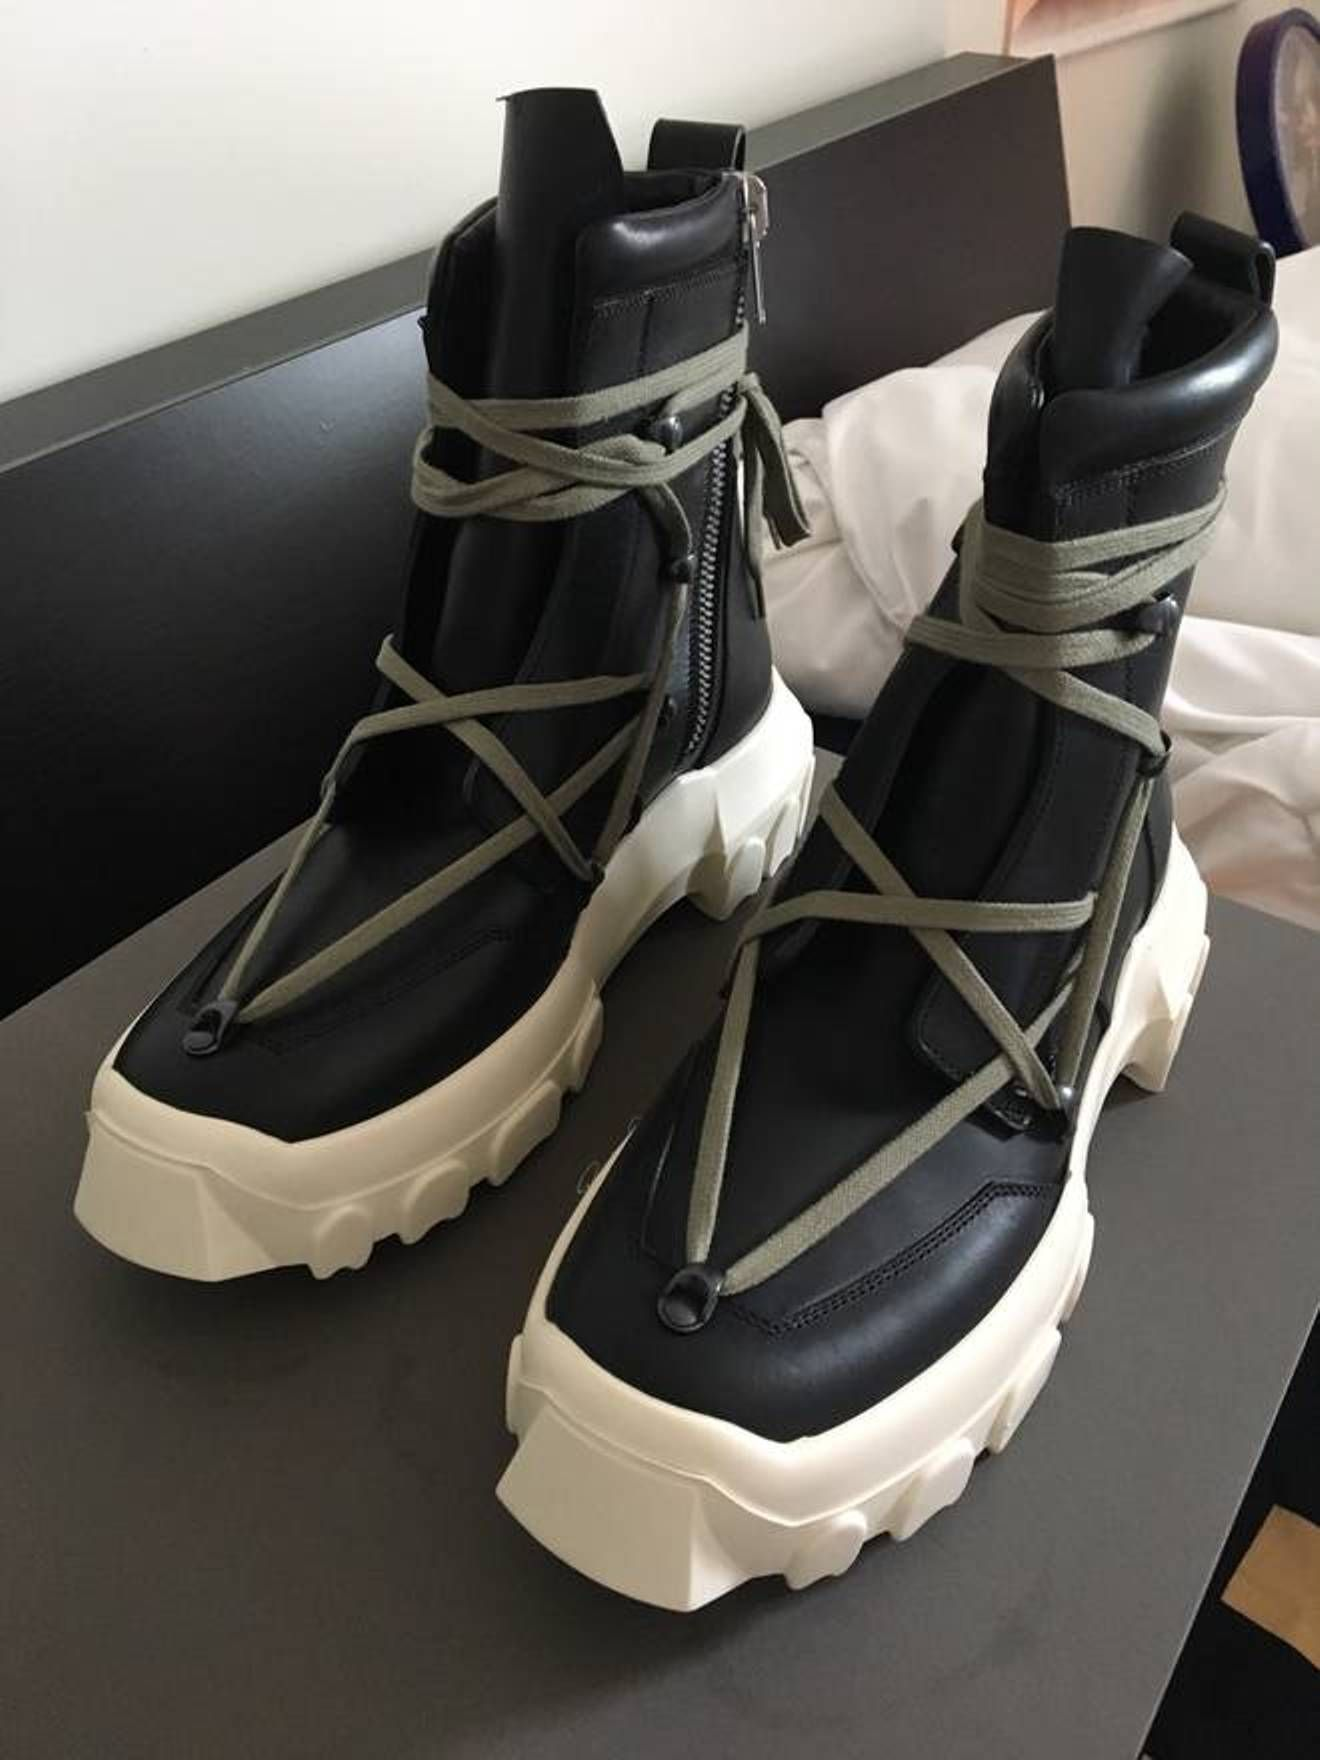 80011bfbb02 Rick Owens Dirt Hiking Boots Size US 9 / EU 42 | ss 18 in 2019 ...